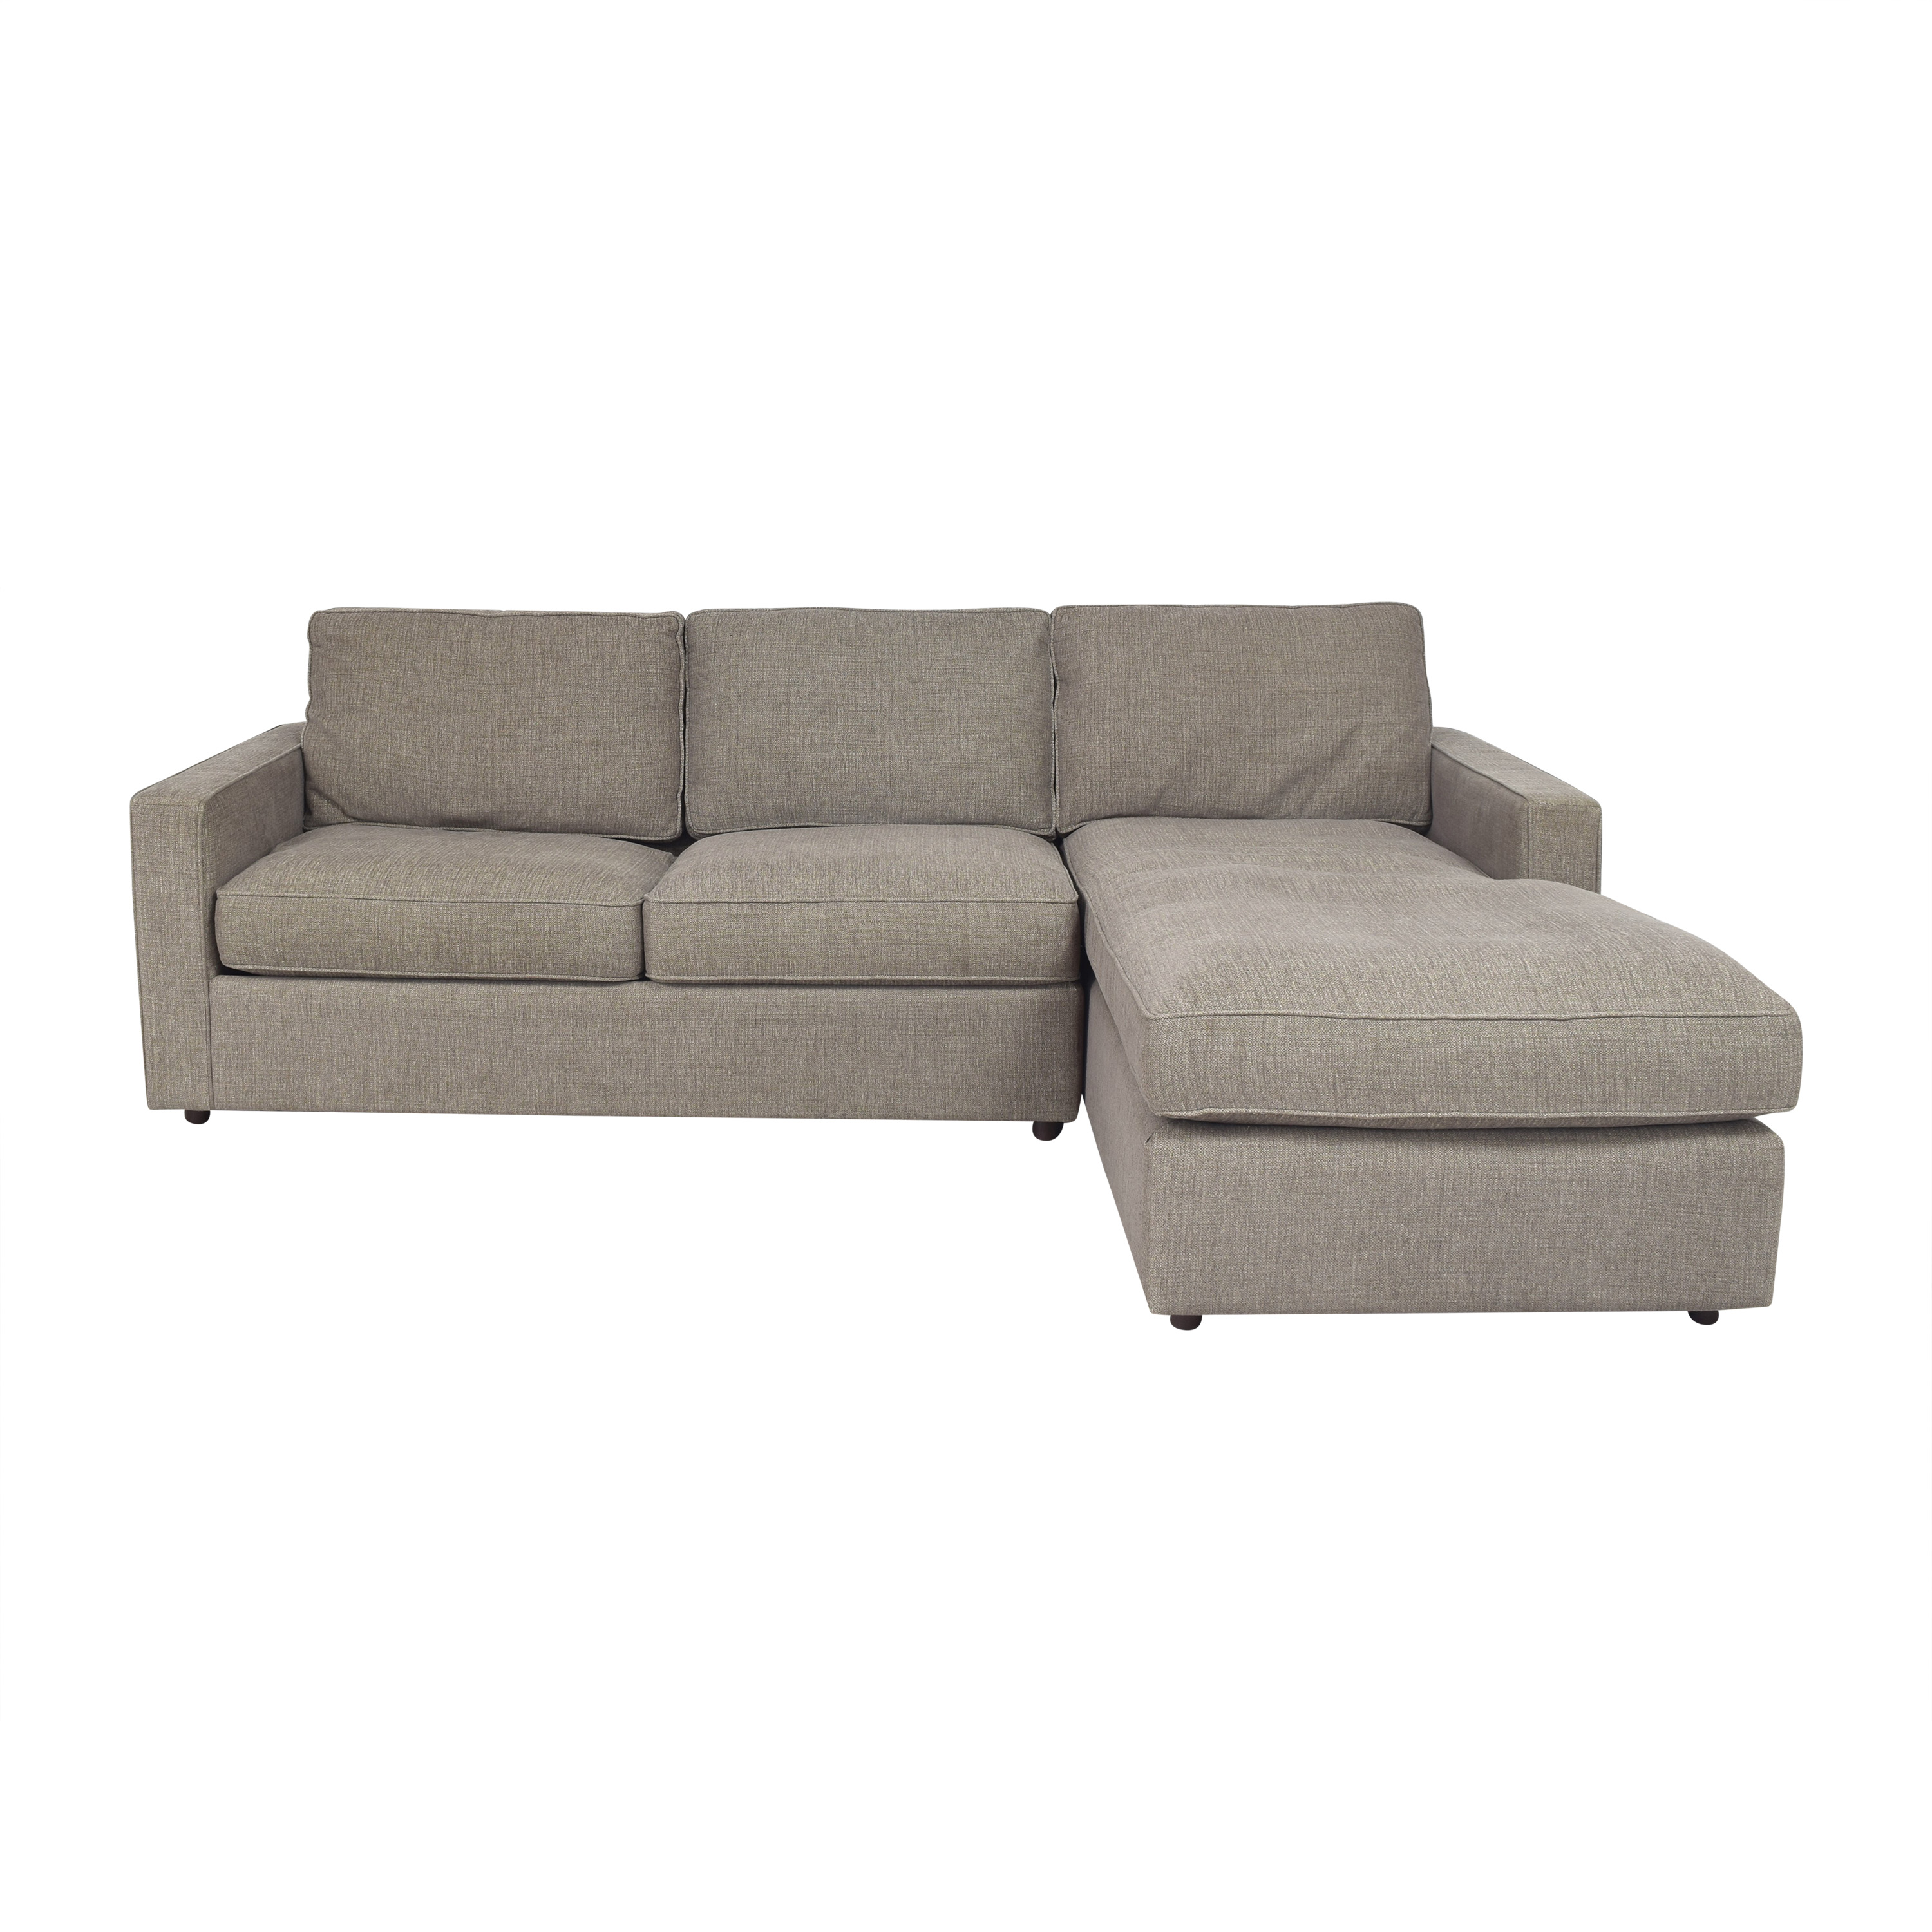 Room & Board Room & Board York Sleeper Sofa with Chaise second hand